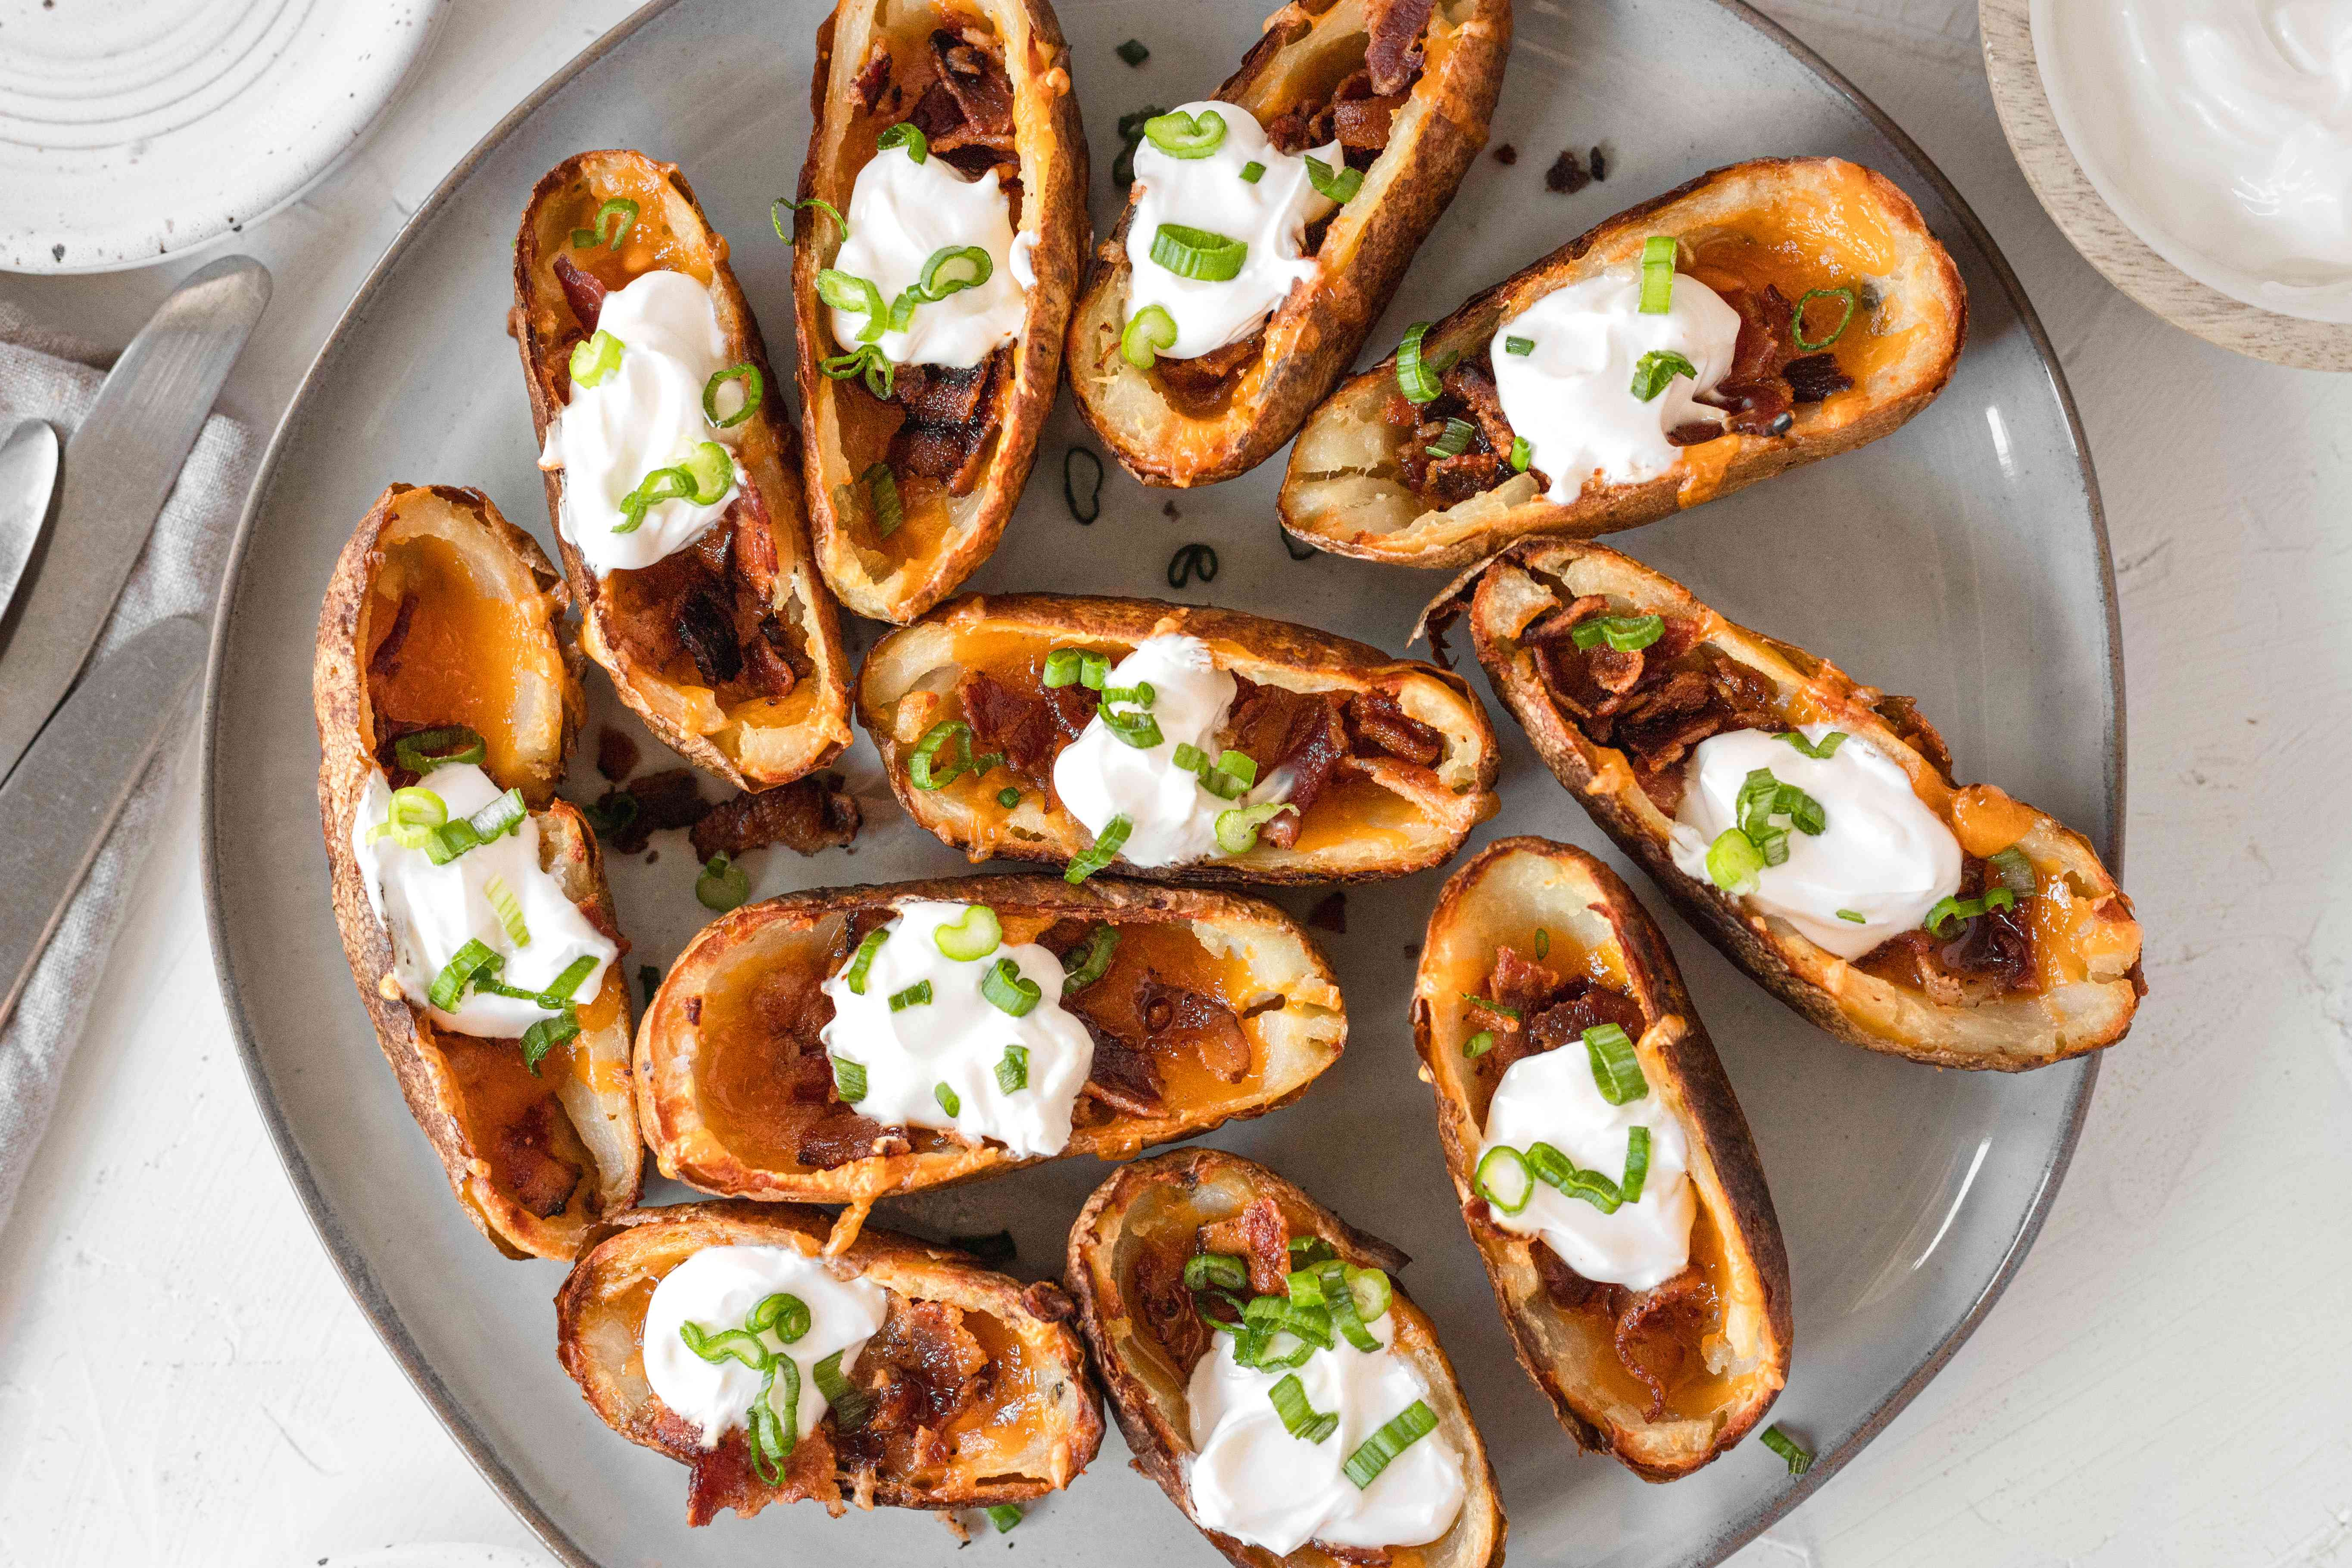 A platter of potato skins ready to be served.